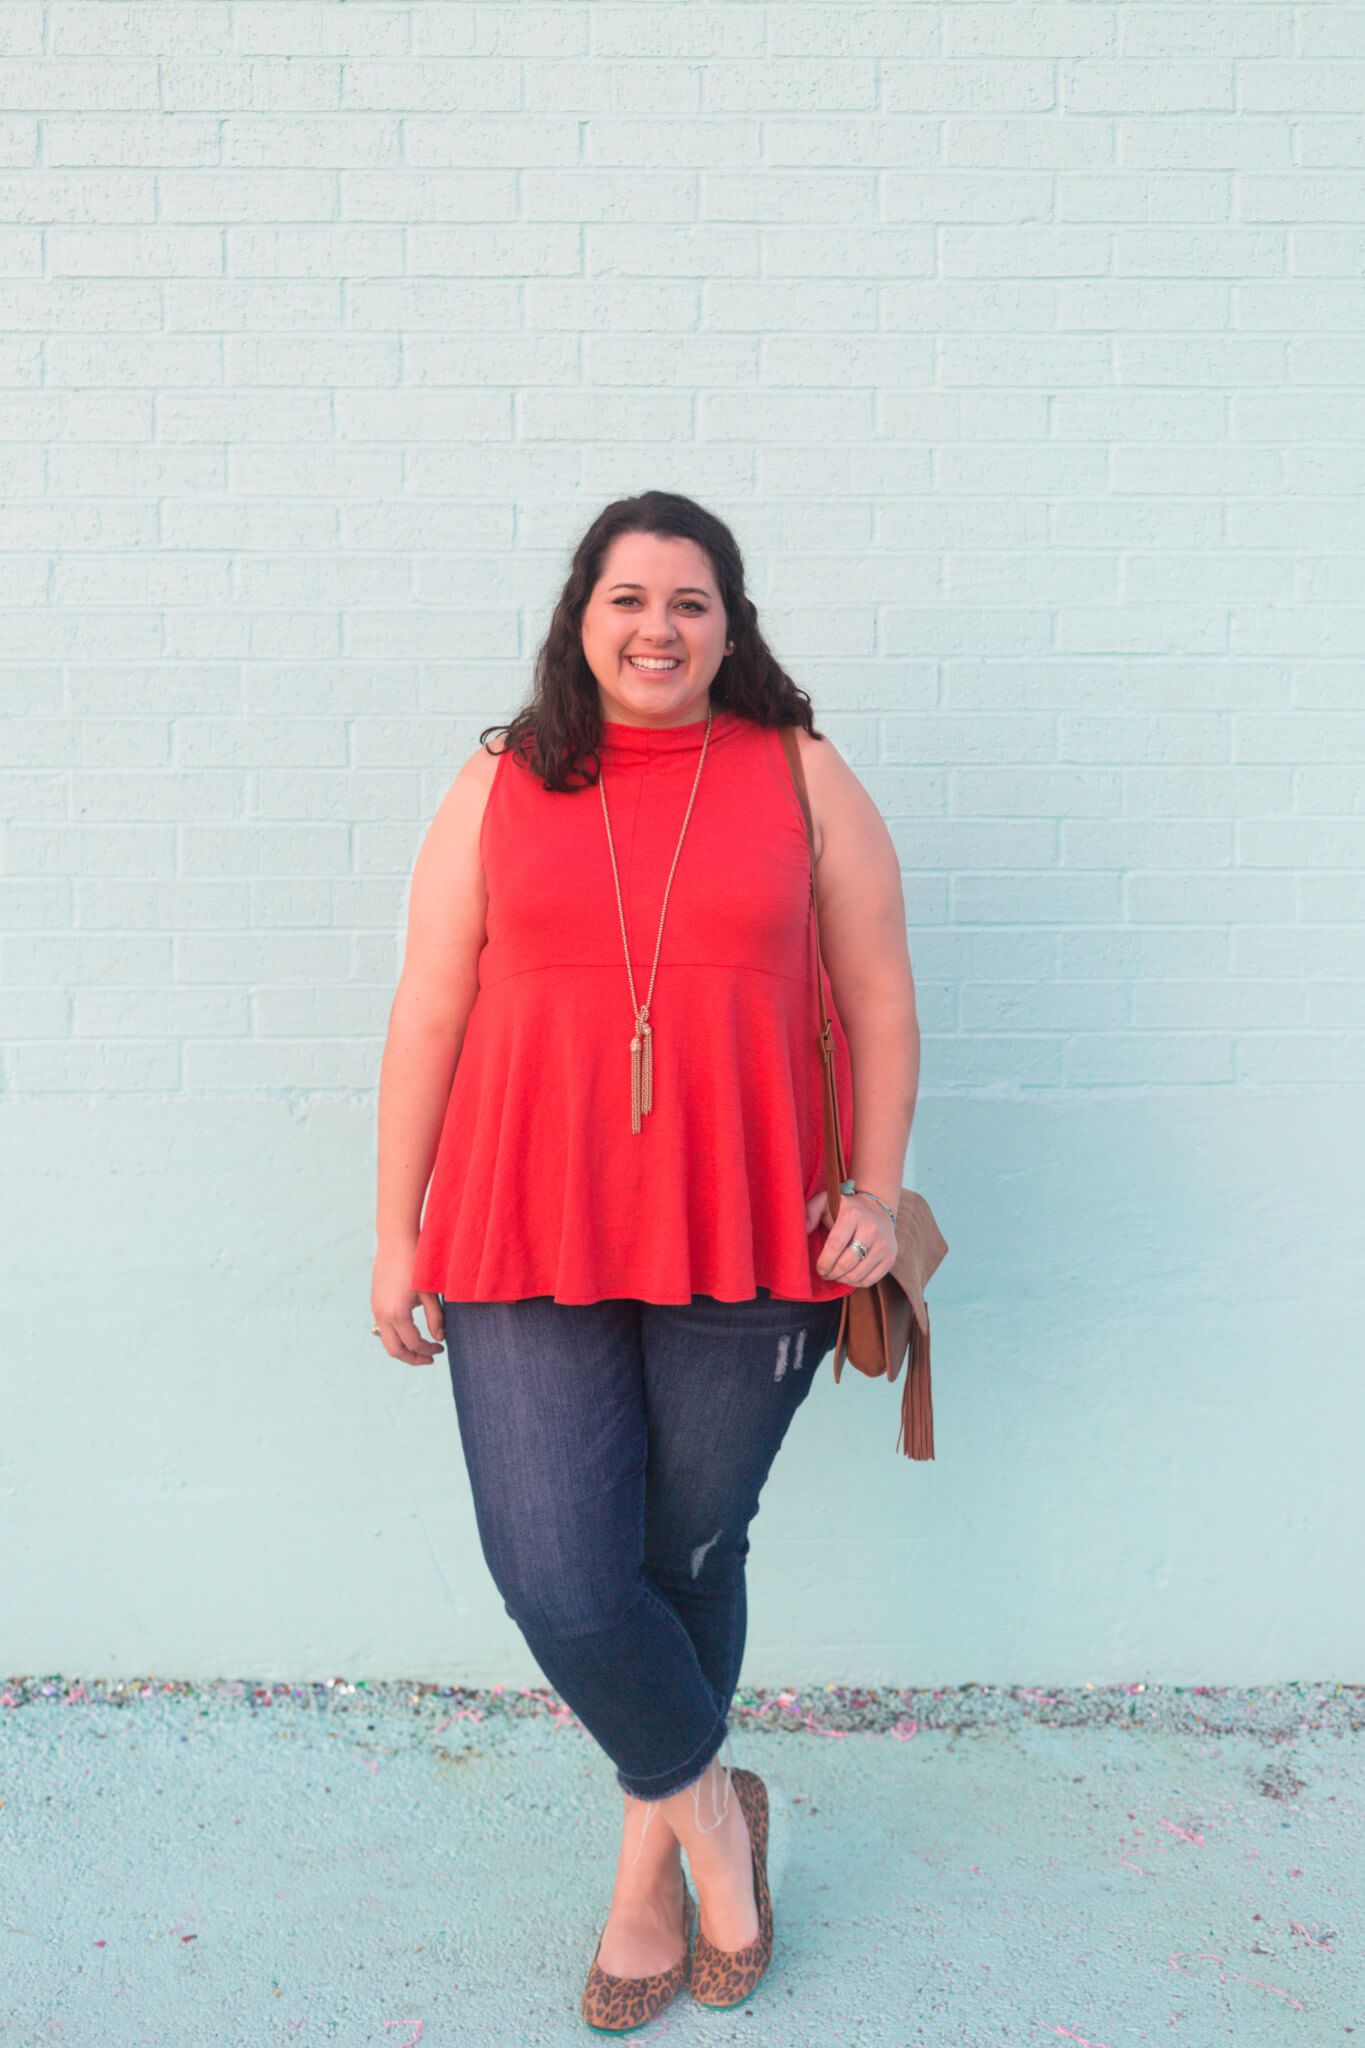 Back to school is made easier with the use of the Octer mobile app which helps me to shop all of my favorite items in one easy to use mobile app. | Something Gold, Something Blue a curvy fashion blog by Emily Bastedo